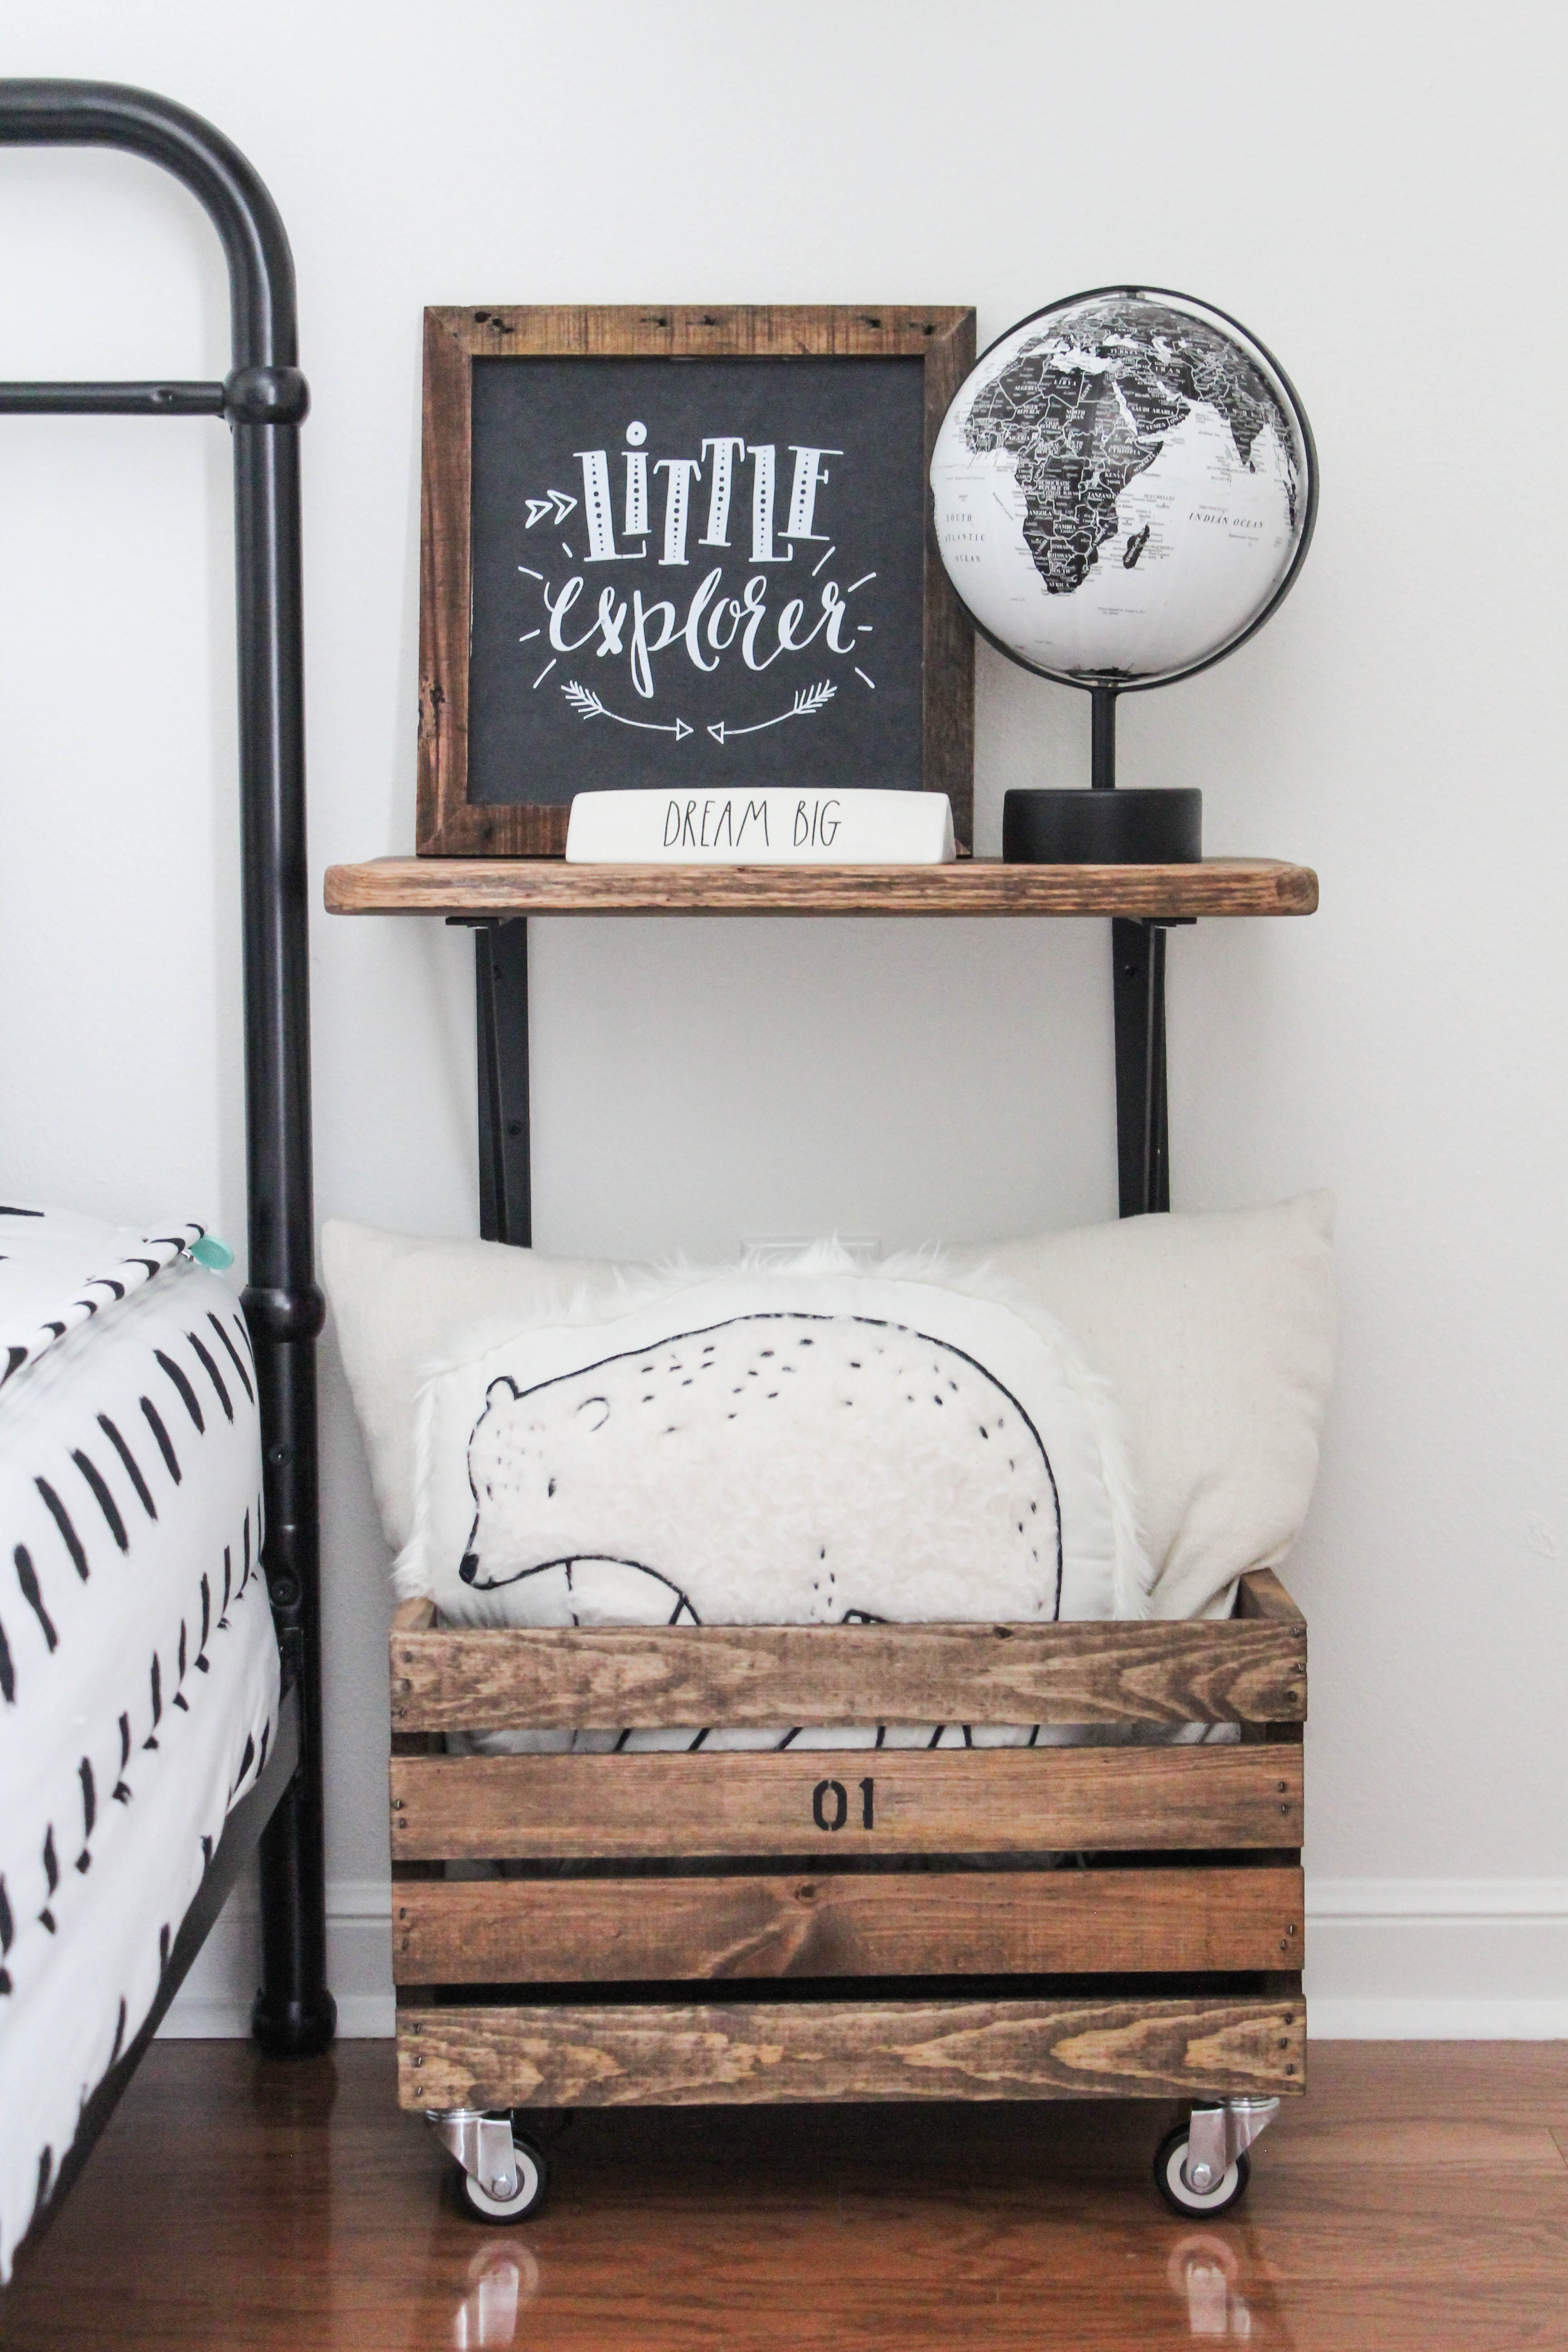 You won't believe how easy & cheap this is! See how I gave a plain wood crate a diy makeover to turn it into vintage-inspired storage in my son's room!